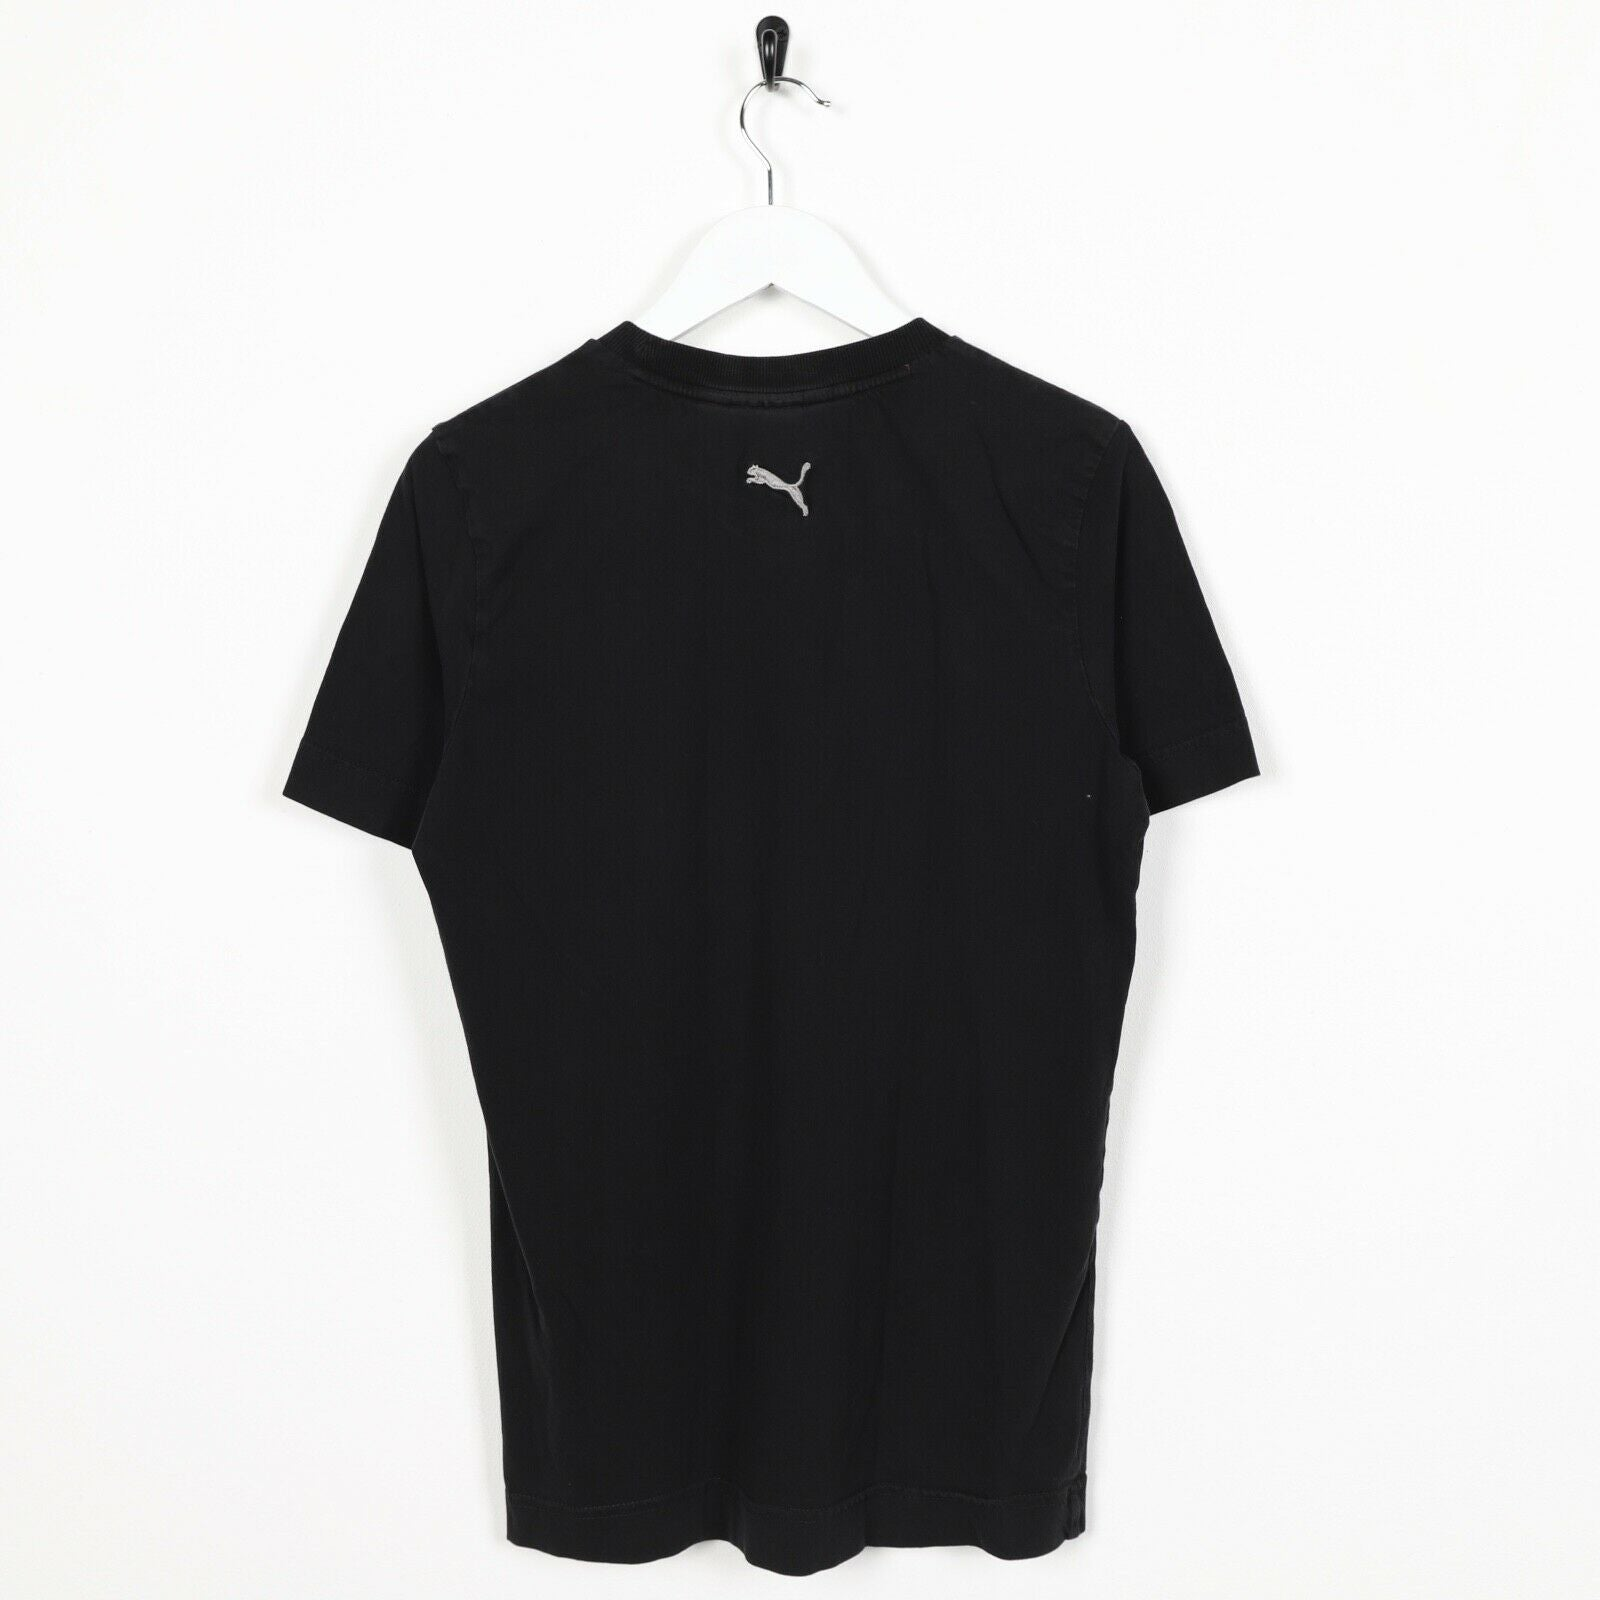 Vintage PUMA Central Spell Out Logo T Shirt Tee Black XS